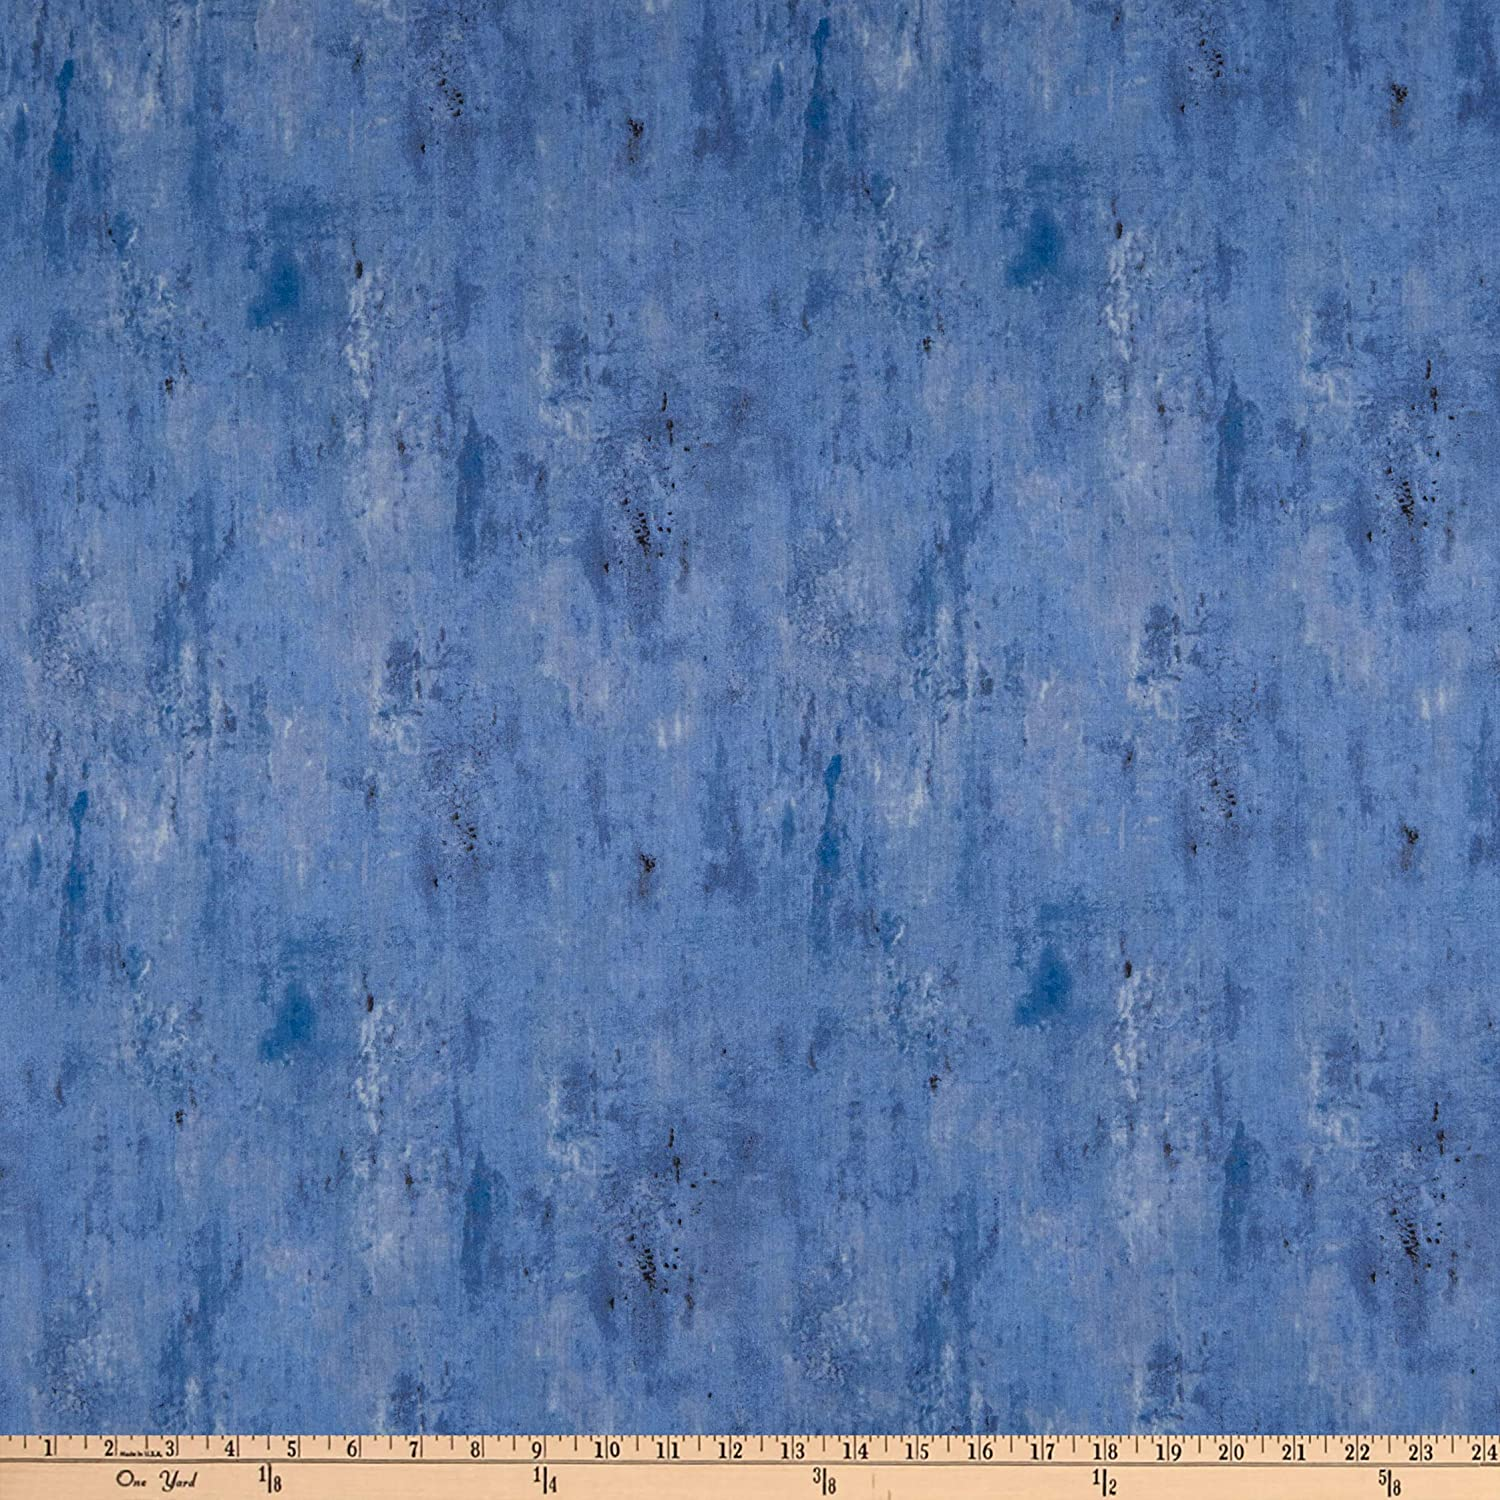 Wilmington Essentials Vintage Texture Denim Fabric by The Yard